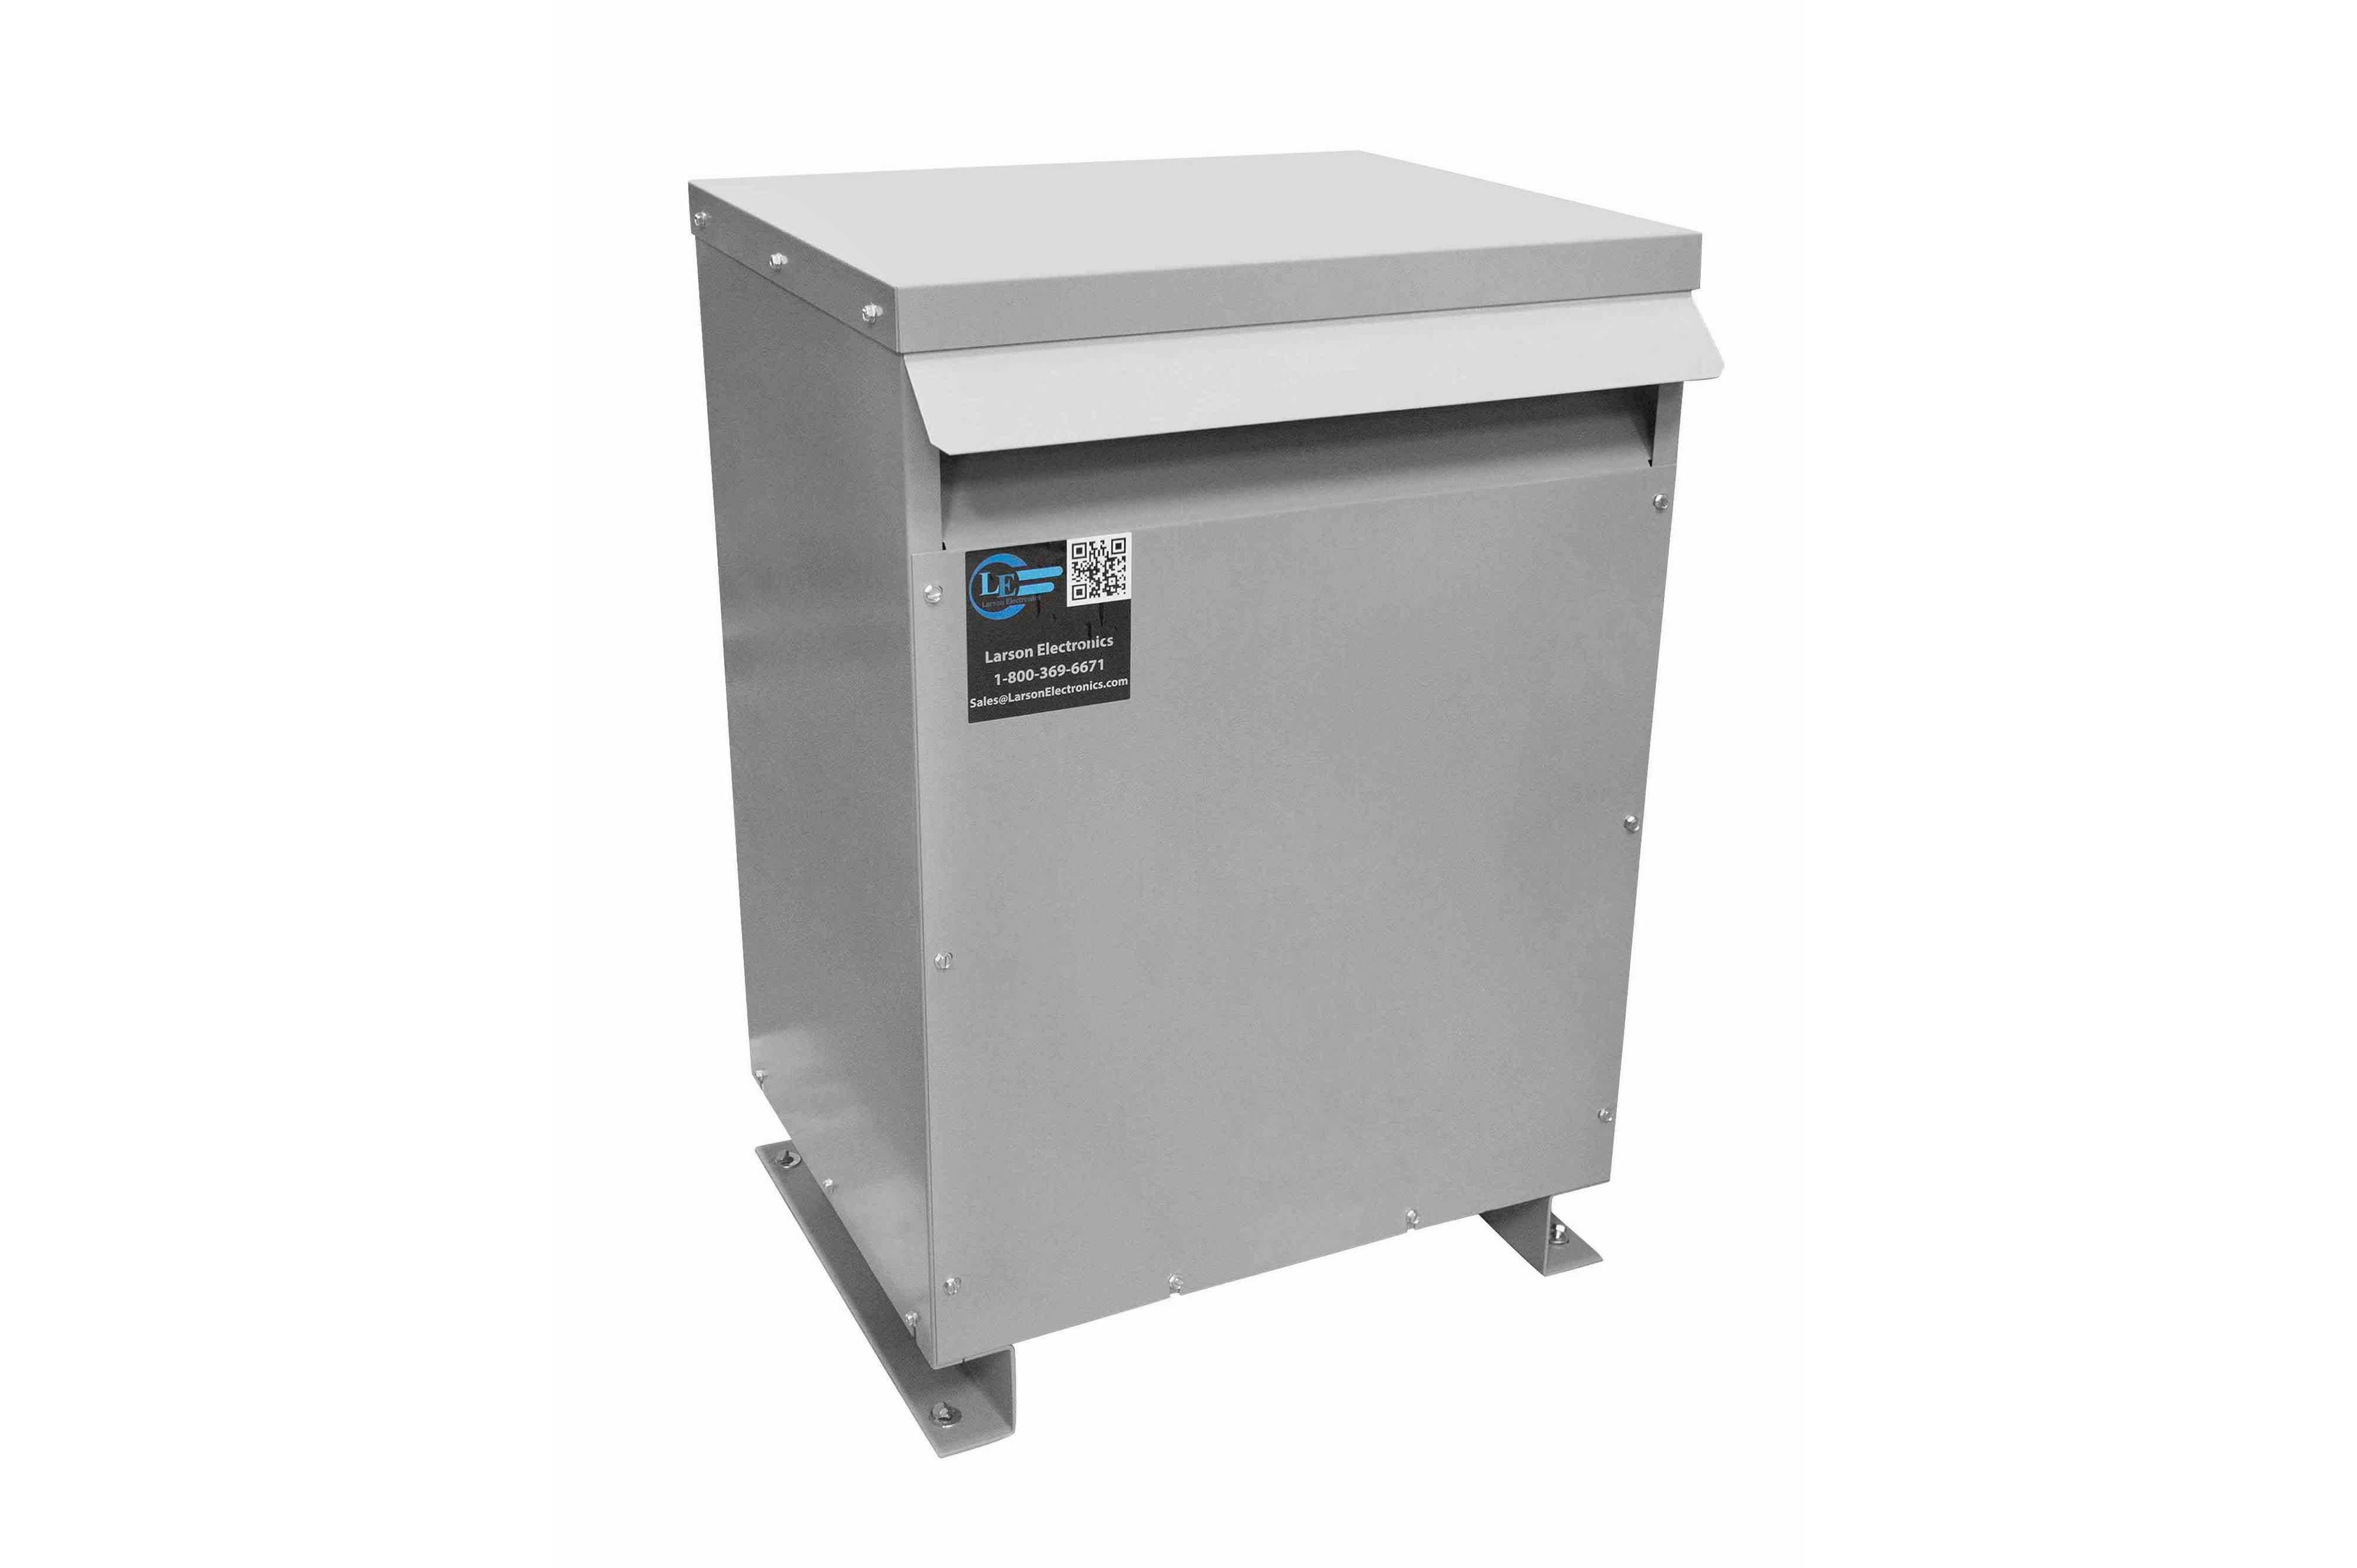 237.5 kVA 3PH Isolation Transformer, 480V Wye Primary, 575Y/332 Wye-N Secondary, N3R, Ventilated, 60 Hz